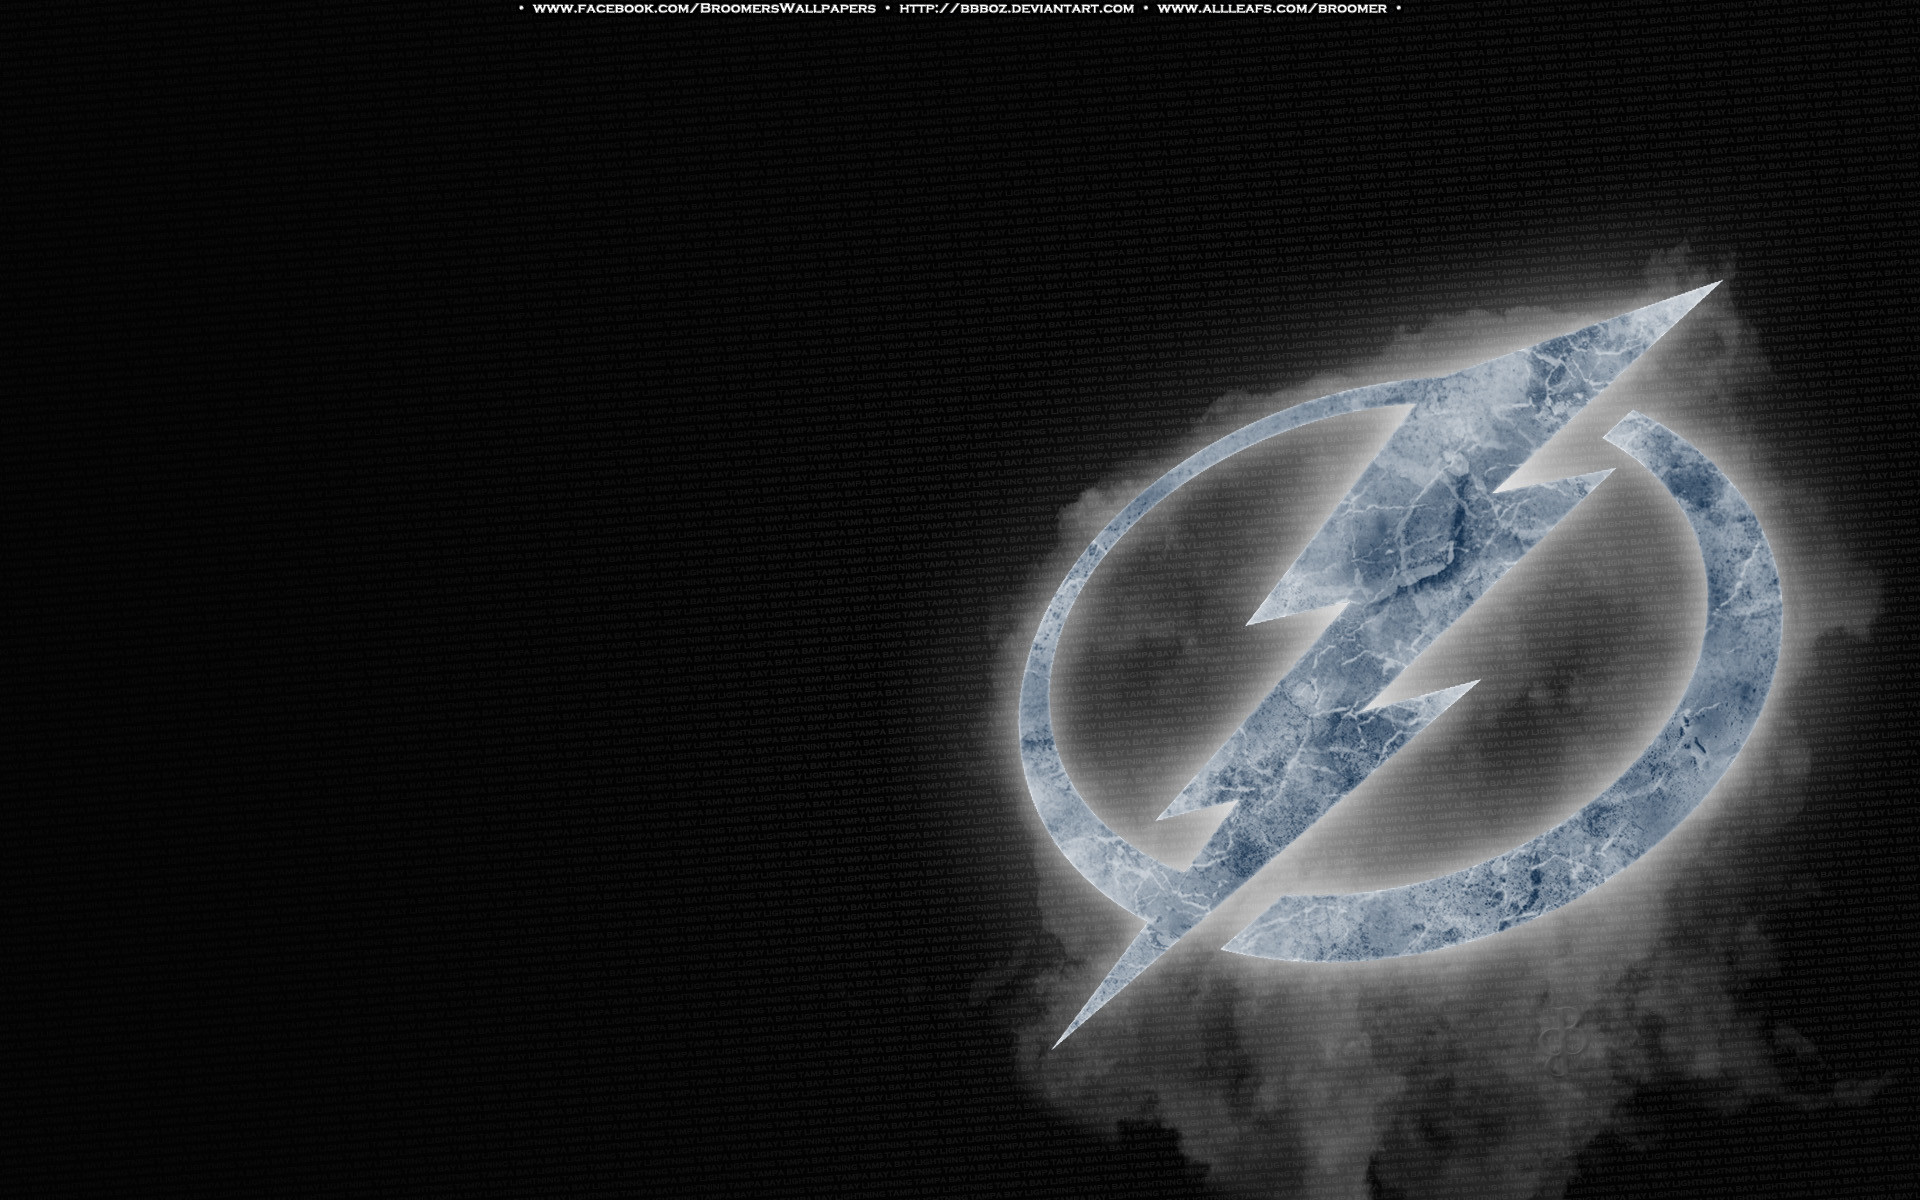 1920x1200 tampa bay lightning ice by bbboz fan art wallpaper other 2011 2015